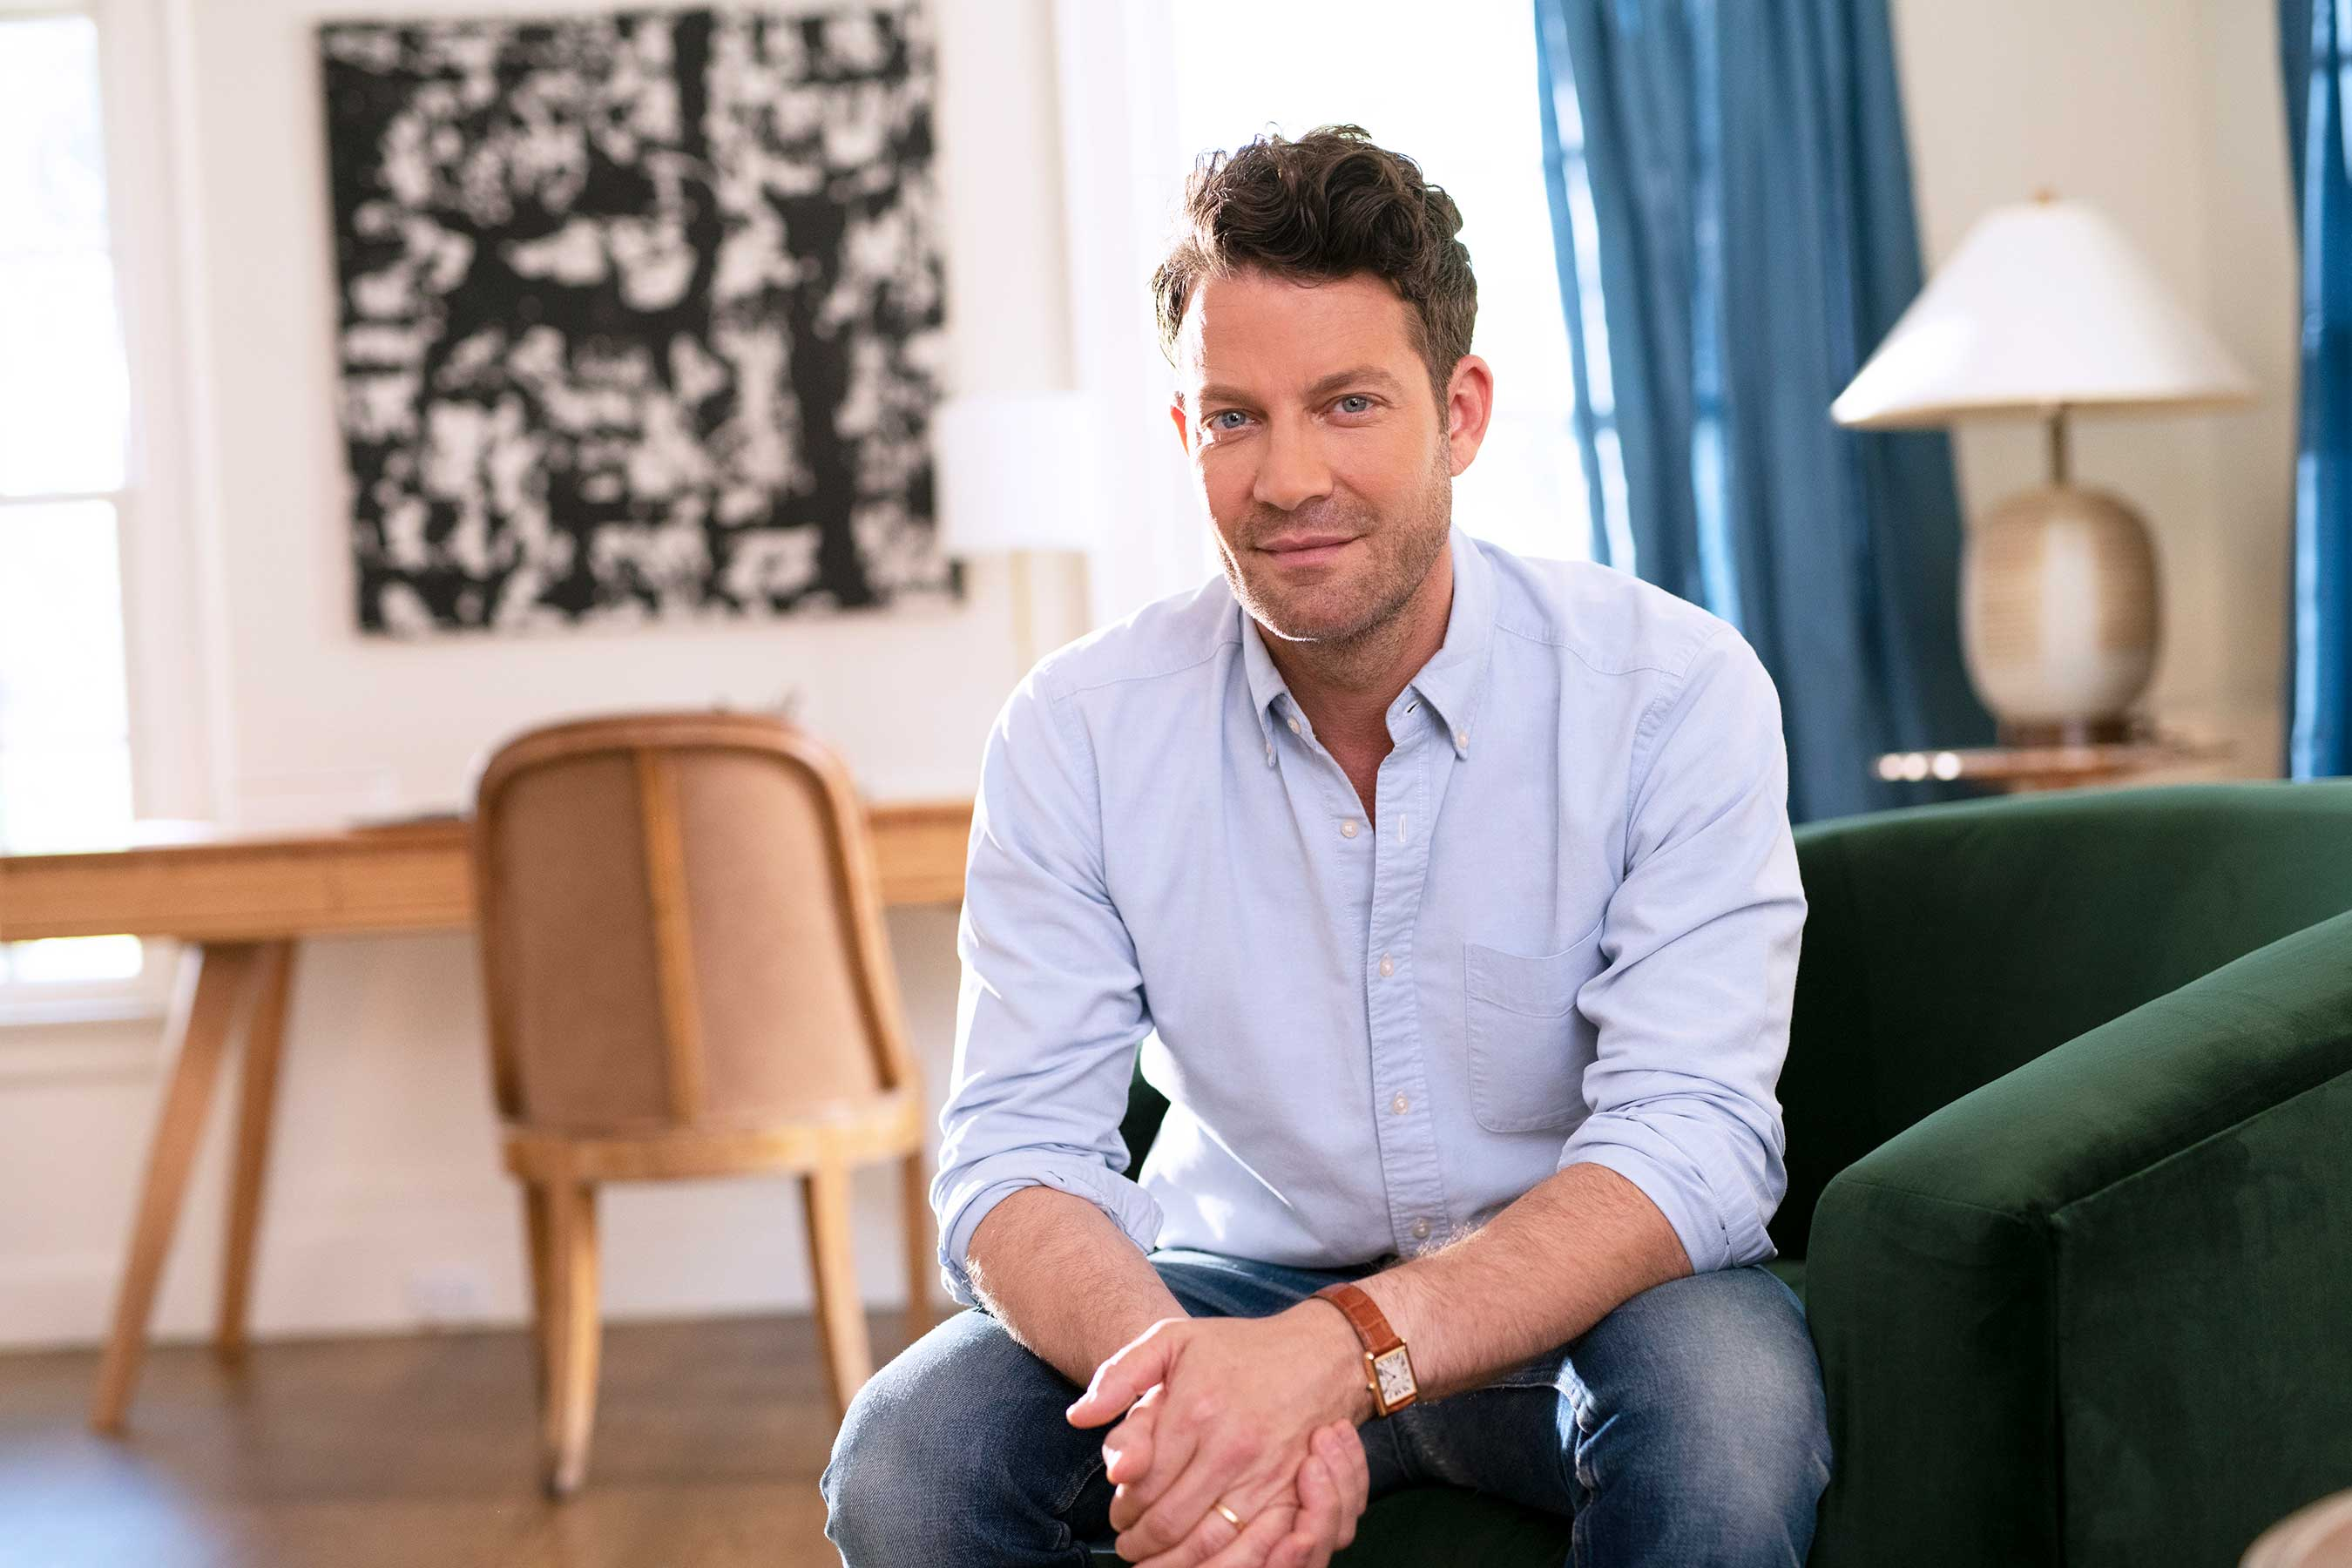 """The My Home in Sight program is an invaluable resource as it empowers people through five key principles and their design choices to continue to live safely and independently in their homes,"" said Berkus. Sign up at MyHomeInSightKit.com."